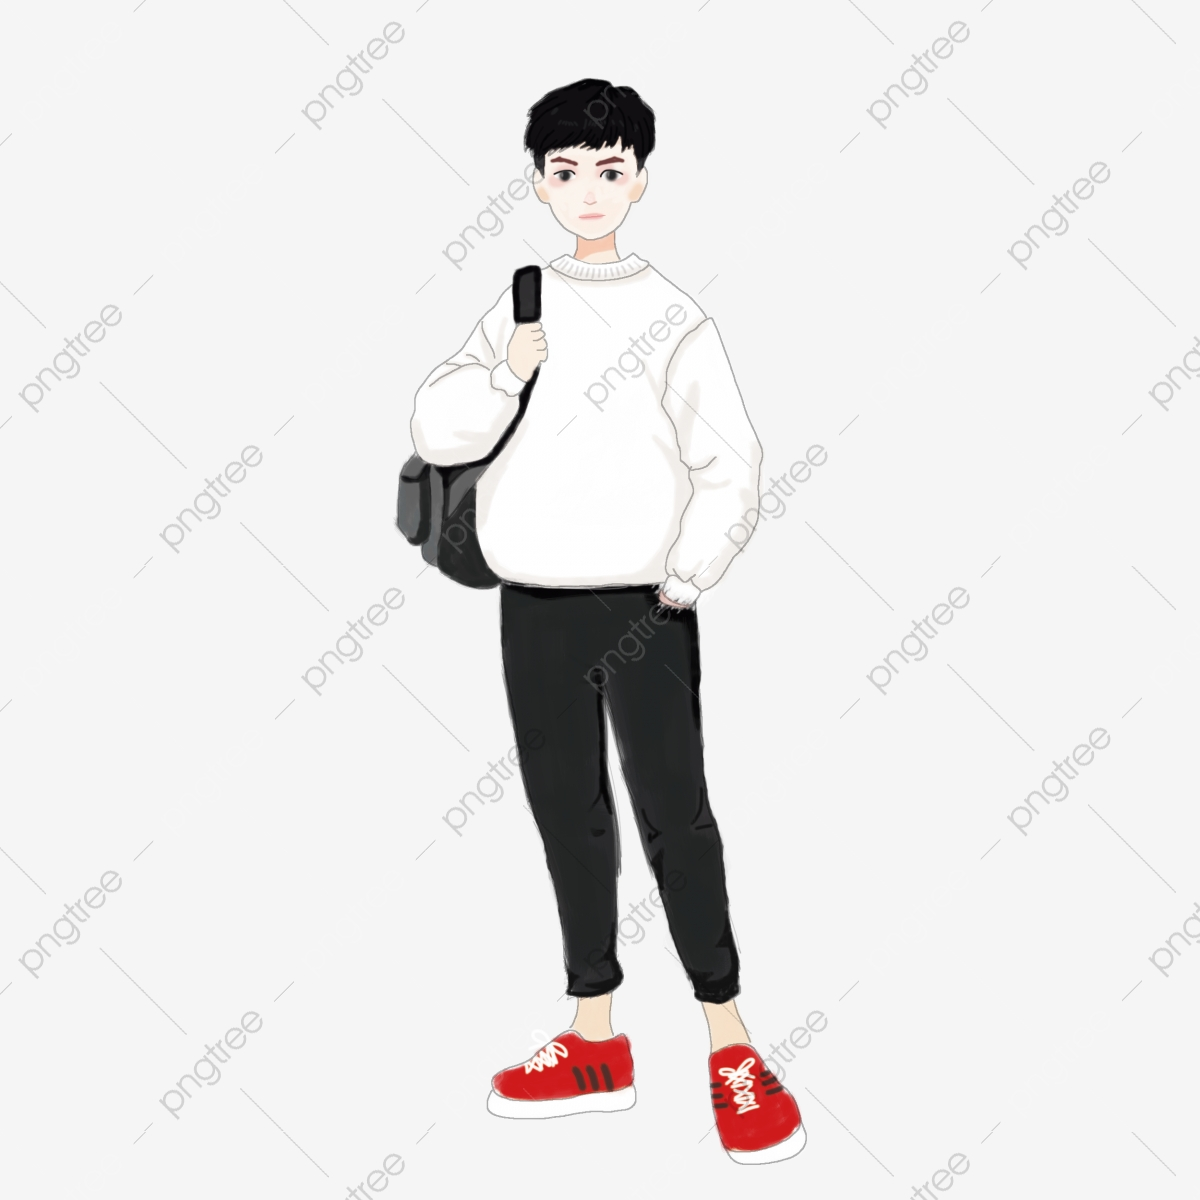 Hand Drawn Boys Carrying Bags Cartoon Image Hand Drawn Boy Carrying Bag Png Transparent Clipart Image And Psd File For Free Download